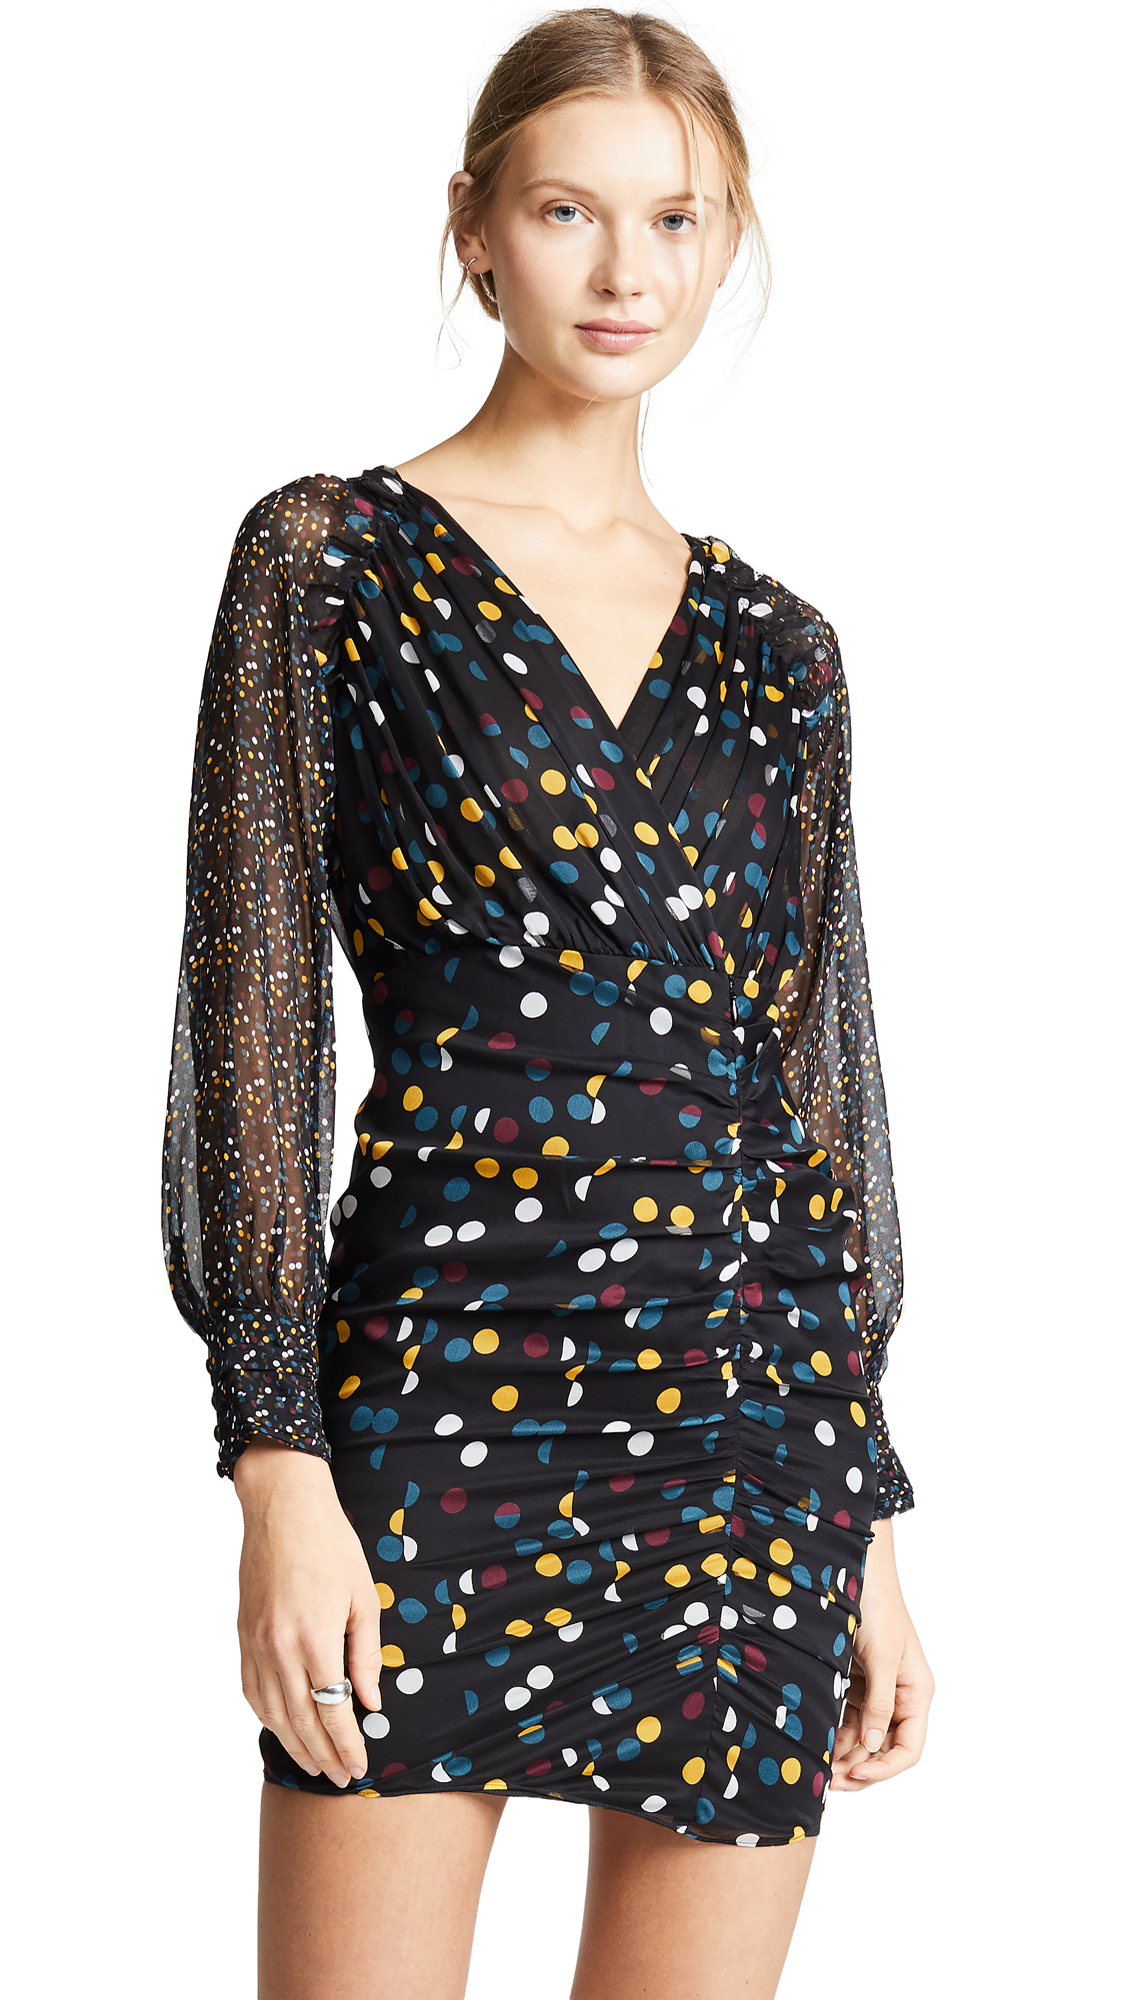 Diane von Furstenberg Betti Dress - Eclipse Dot Black Multi